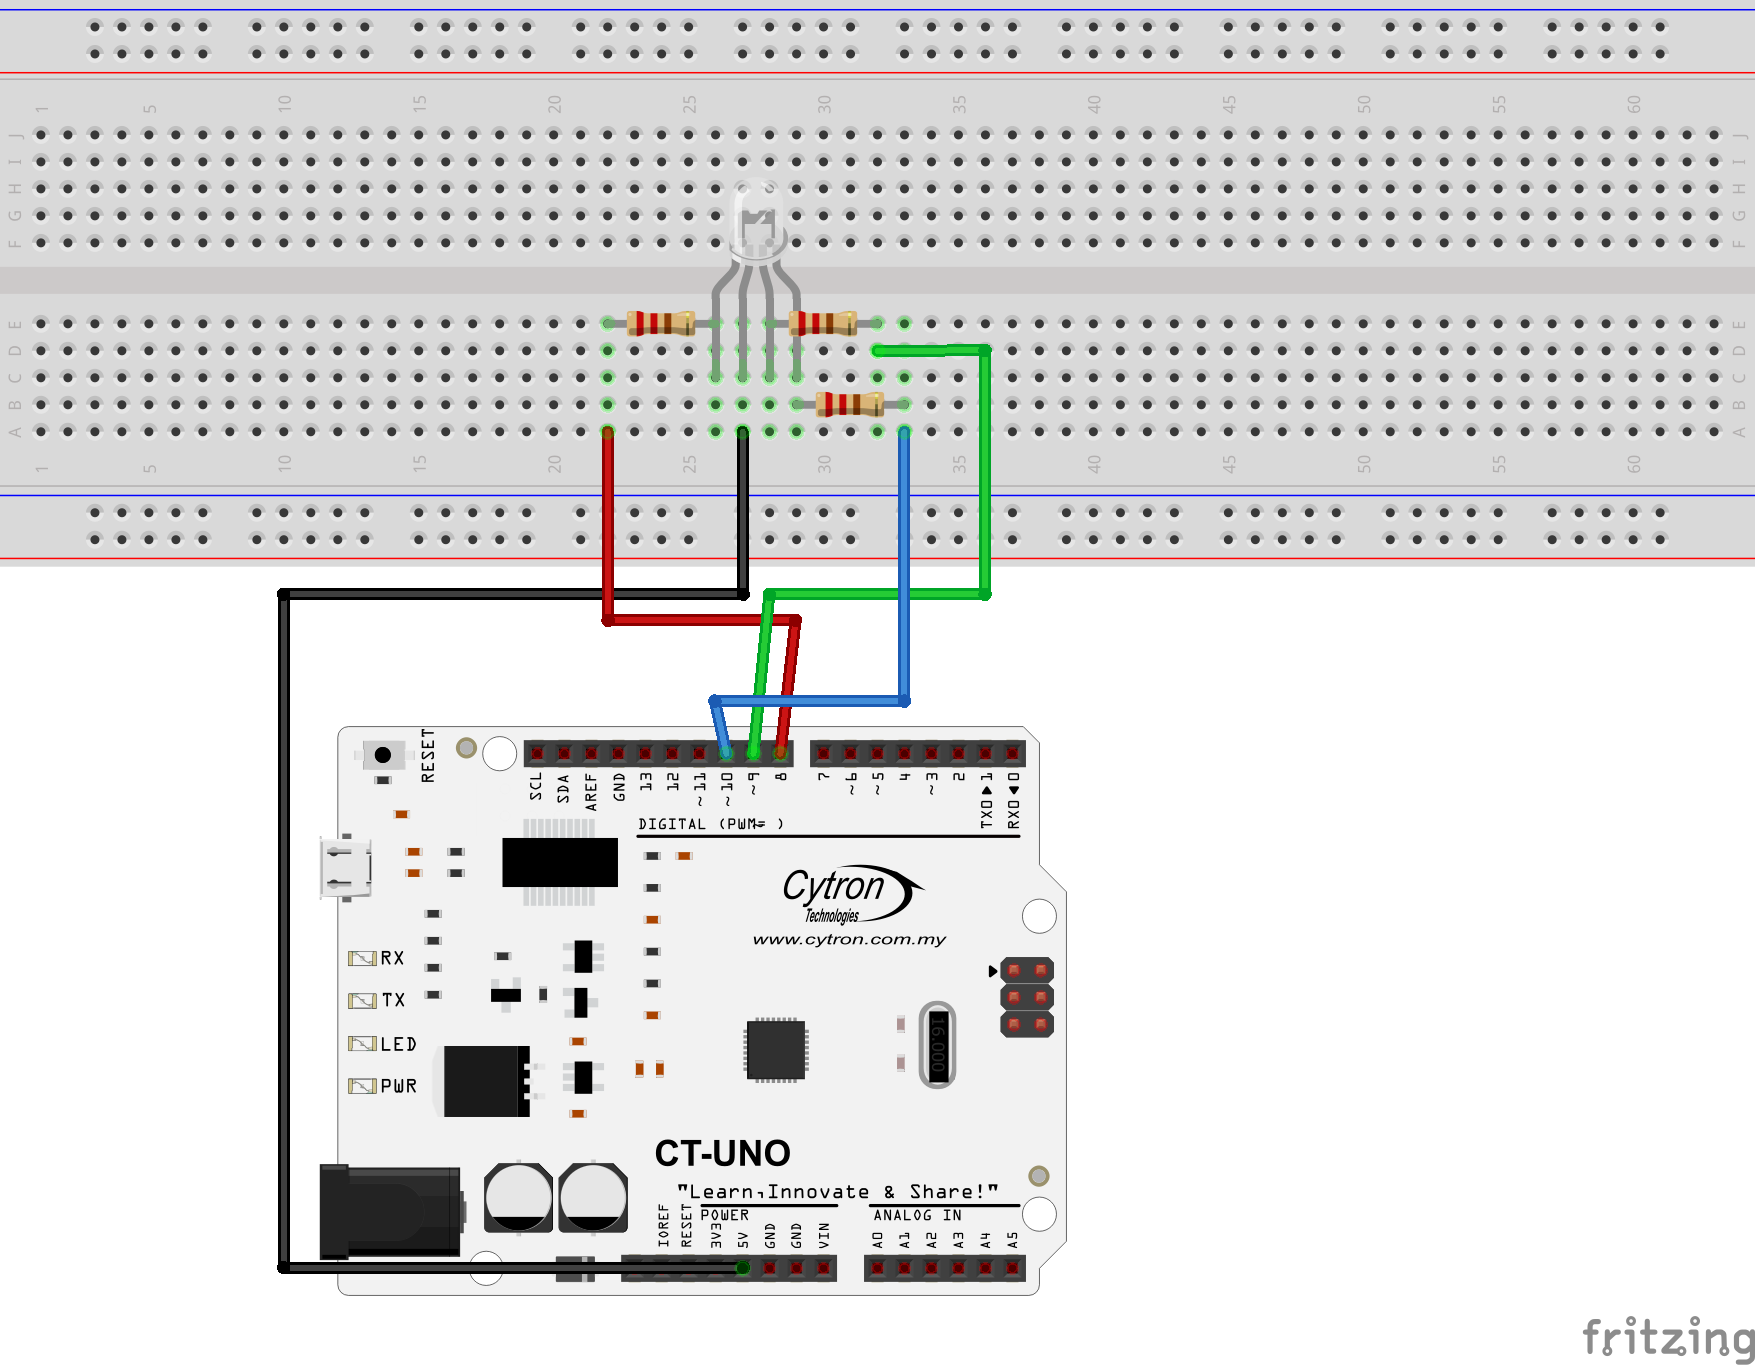 Rfid Reader Id 20la 125khz With Arduino Tutorial By Cytron Uno Pinout Diagram Make When Card Is Placed Near The From Top Tags Read And Compared Registered Tag In Sketch